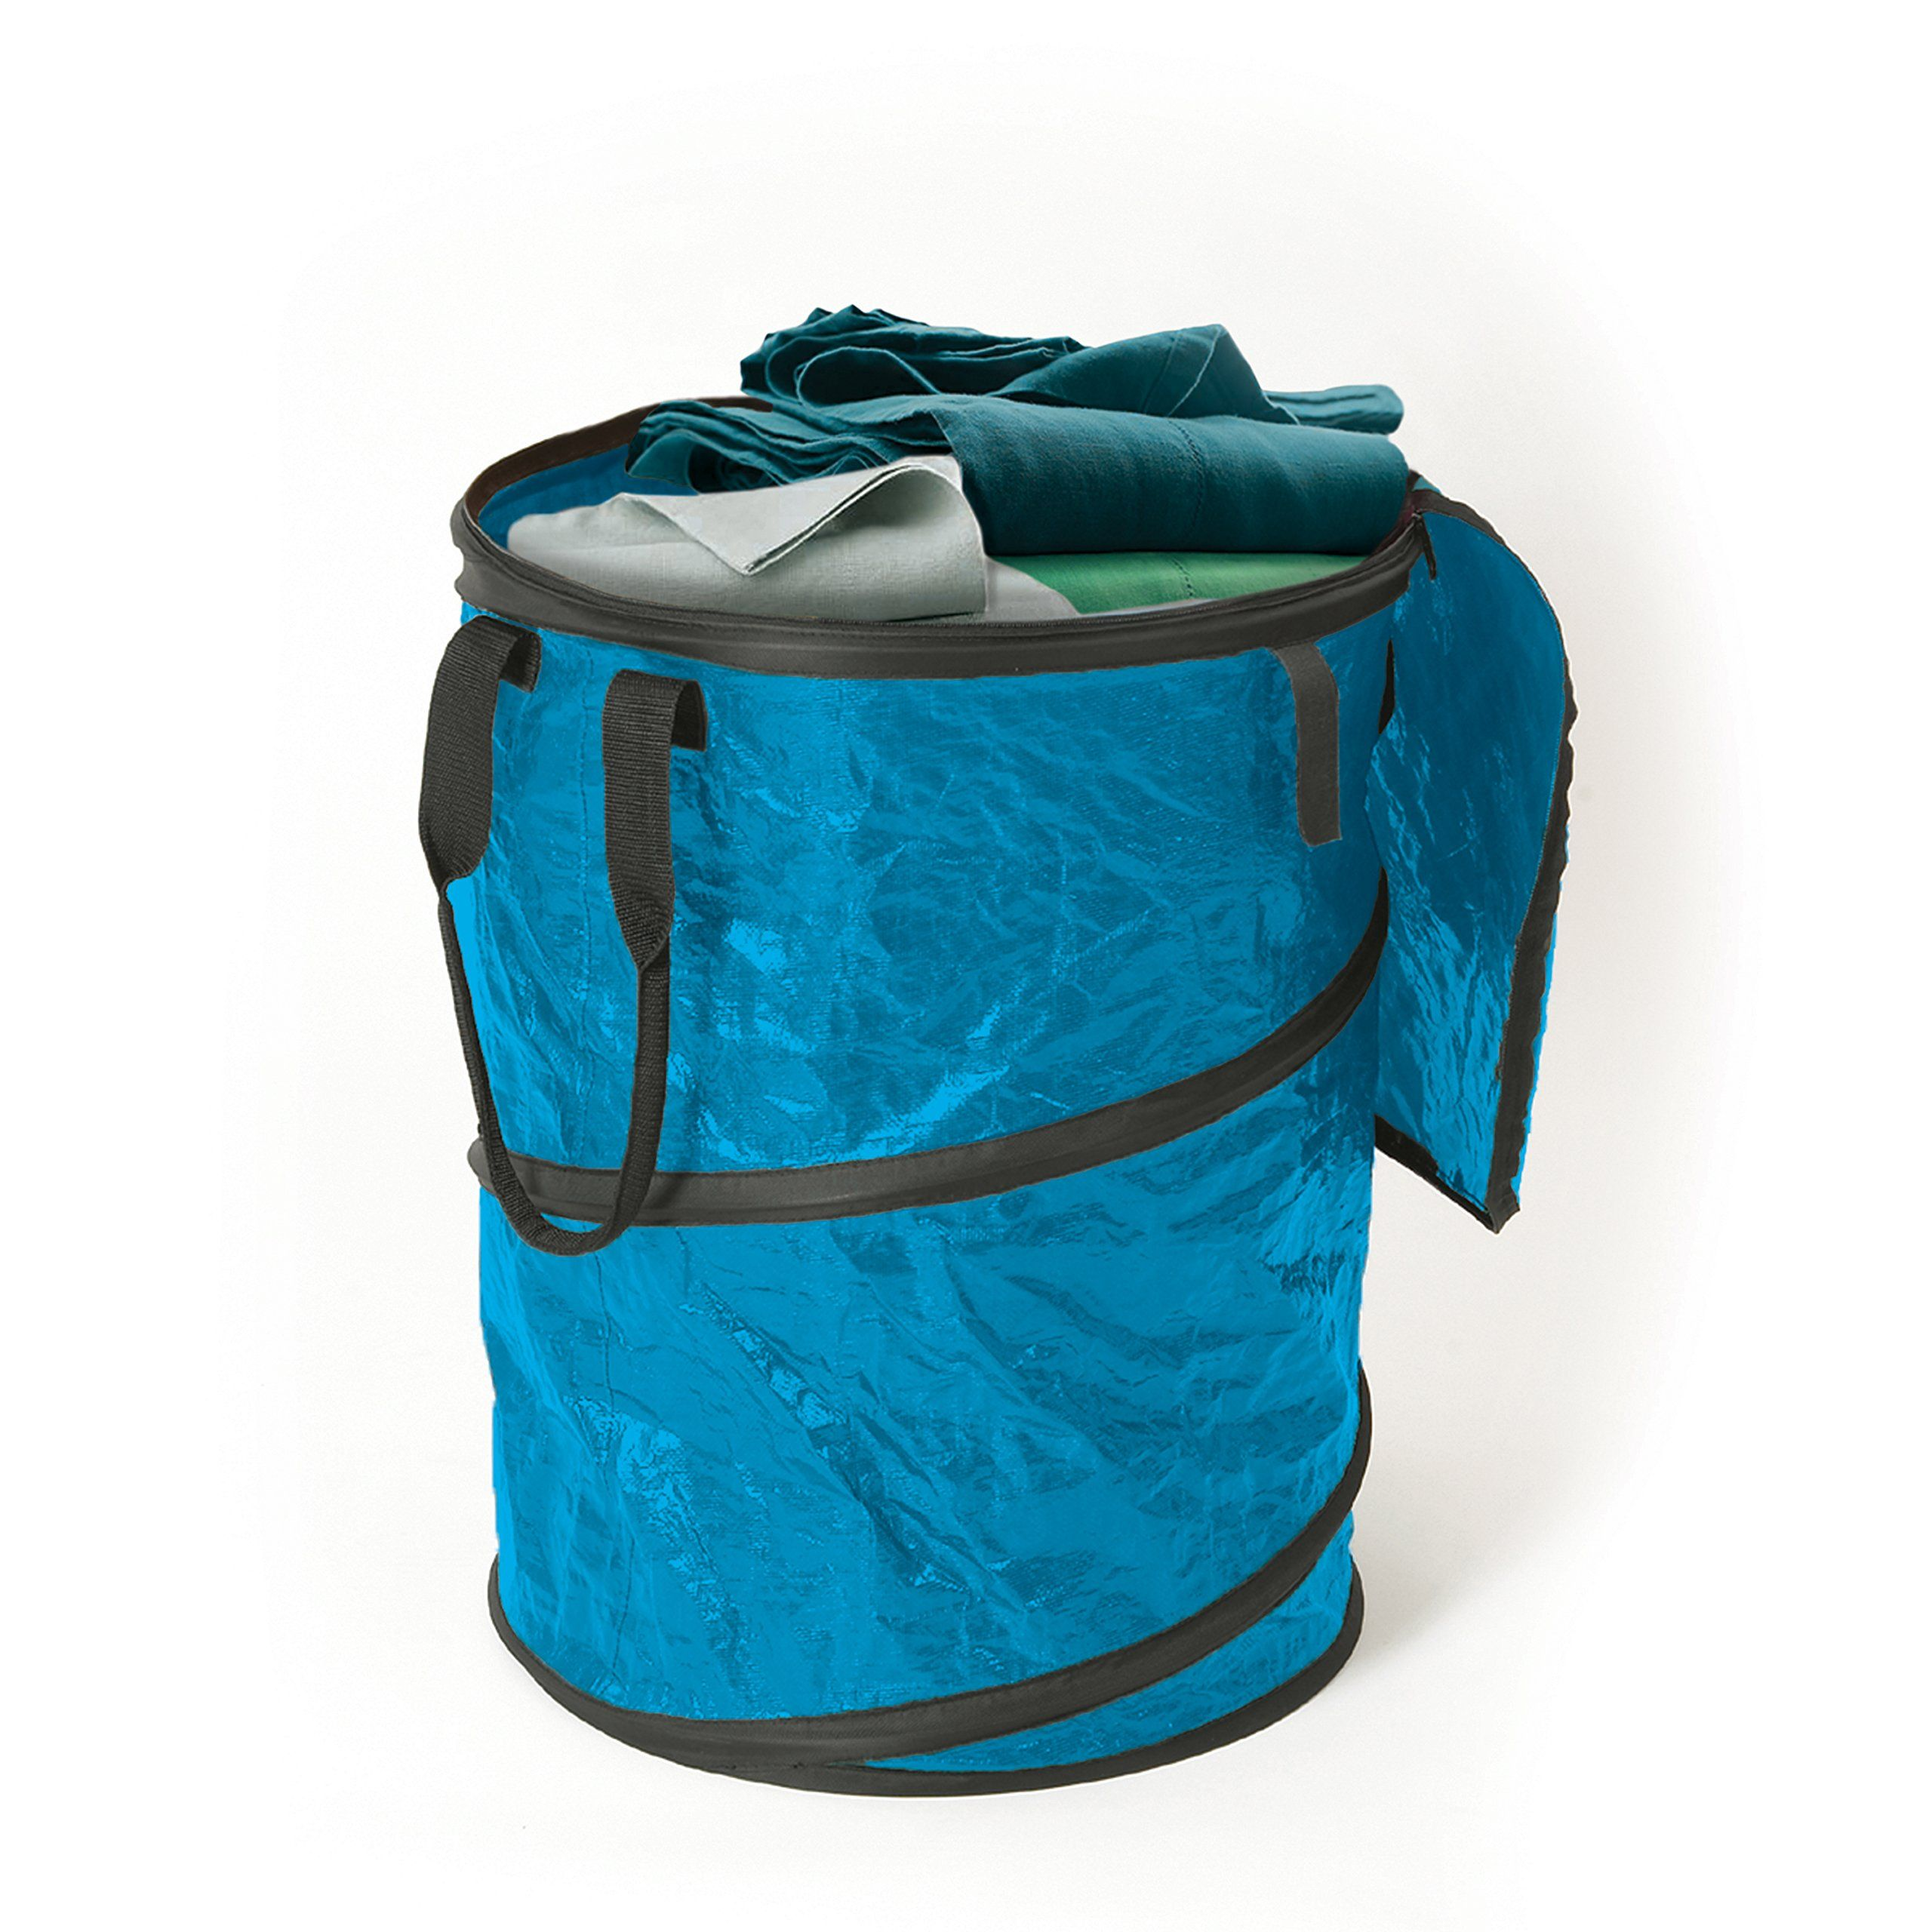 Stansport Collapsible Campsite Carryall Trash Can Blue See This Great Product It Is Amazon Affiliate Link Campingac Camping Accessories Trash Can Trash